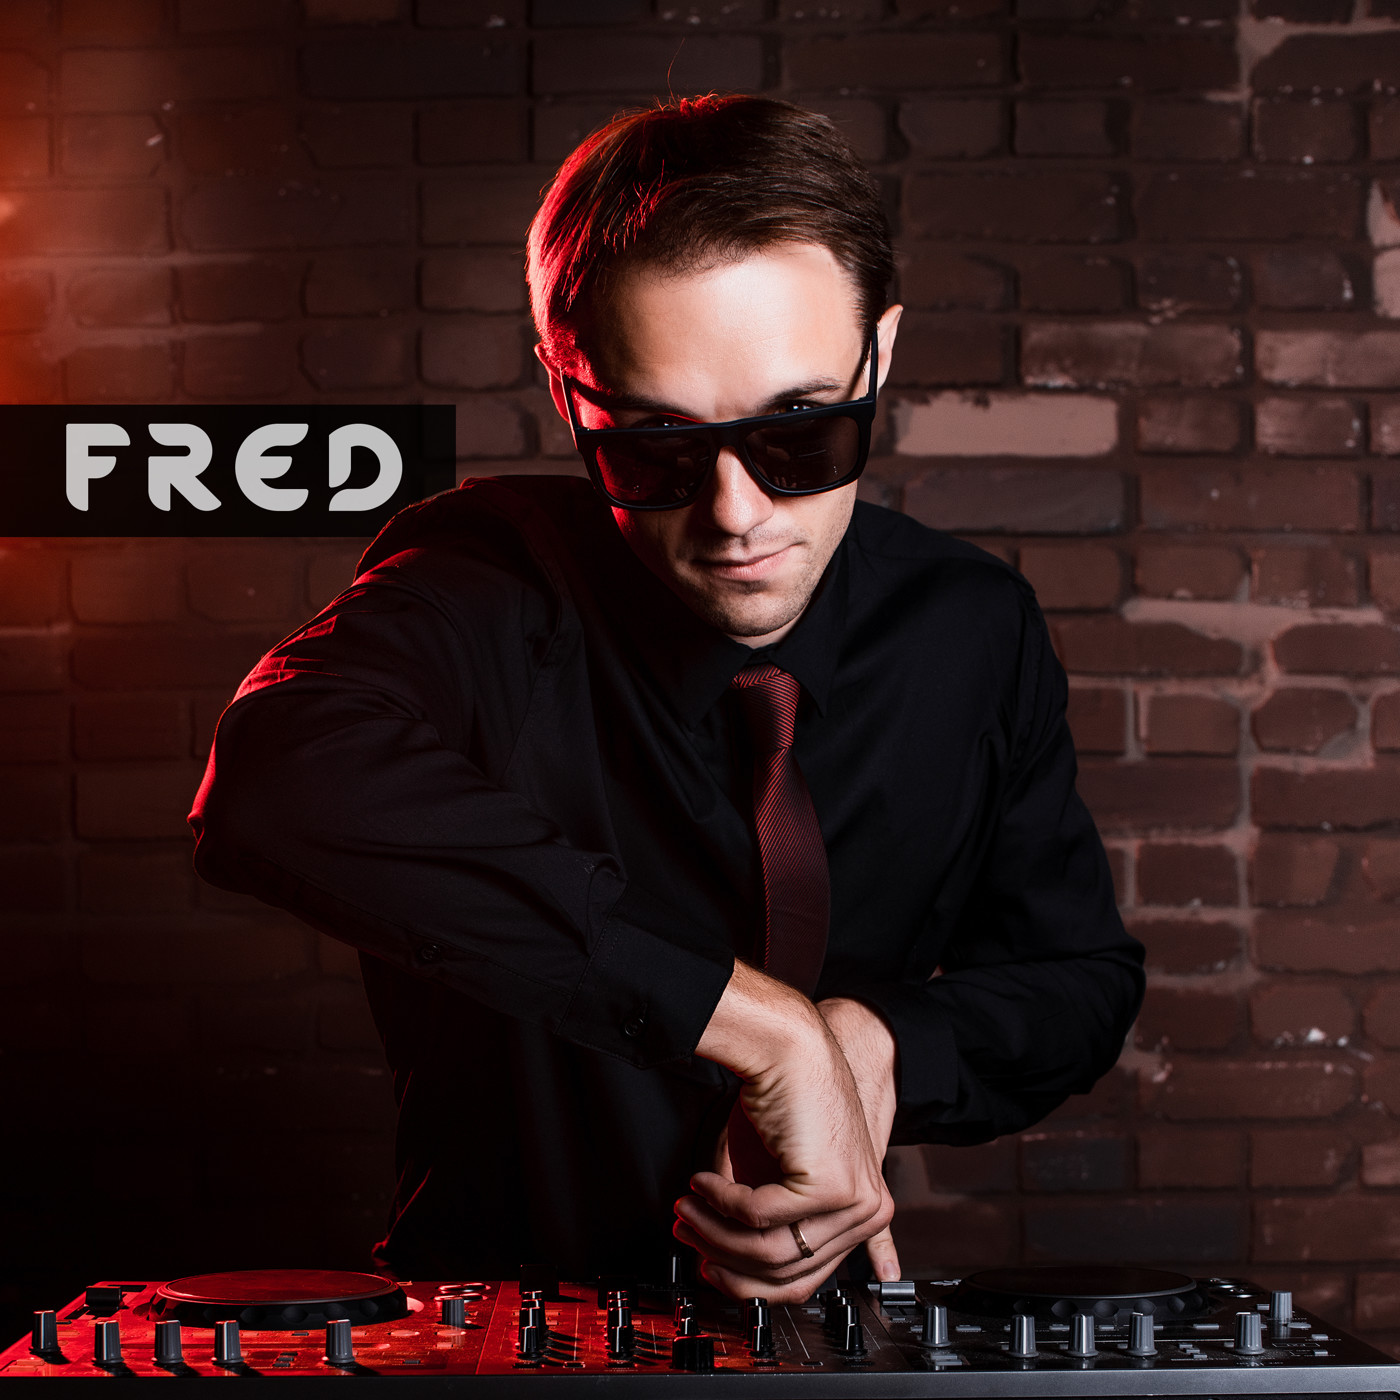 FRED / Fred Flaming / Fred & Mykos